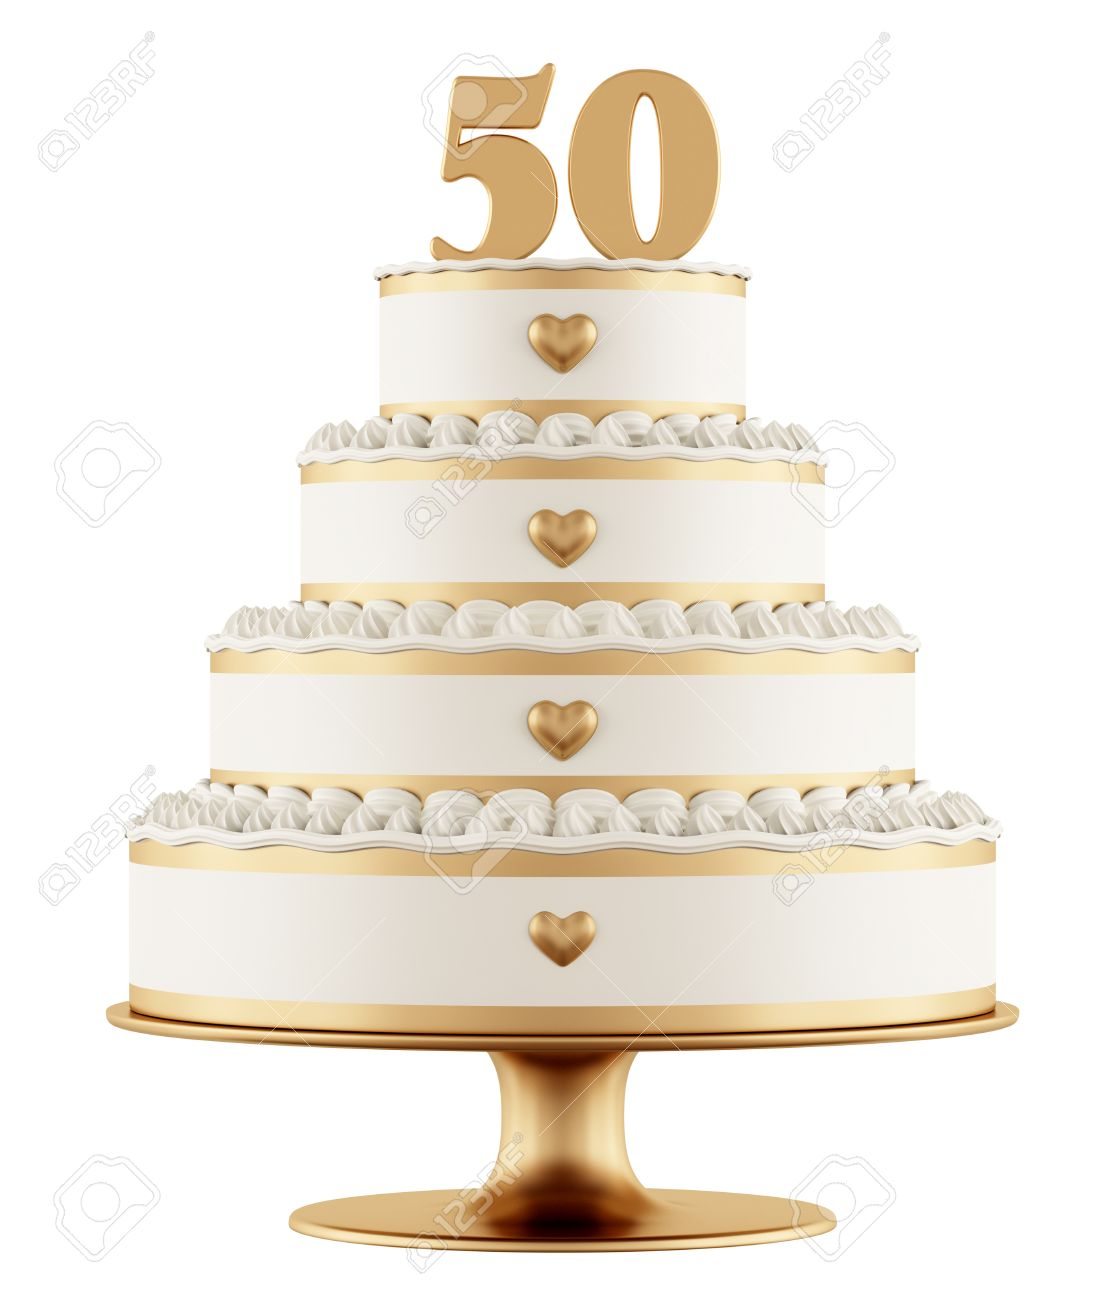 Golden Wedding Cake Isolated On White Background - 3D Rendering ...